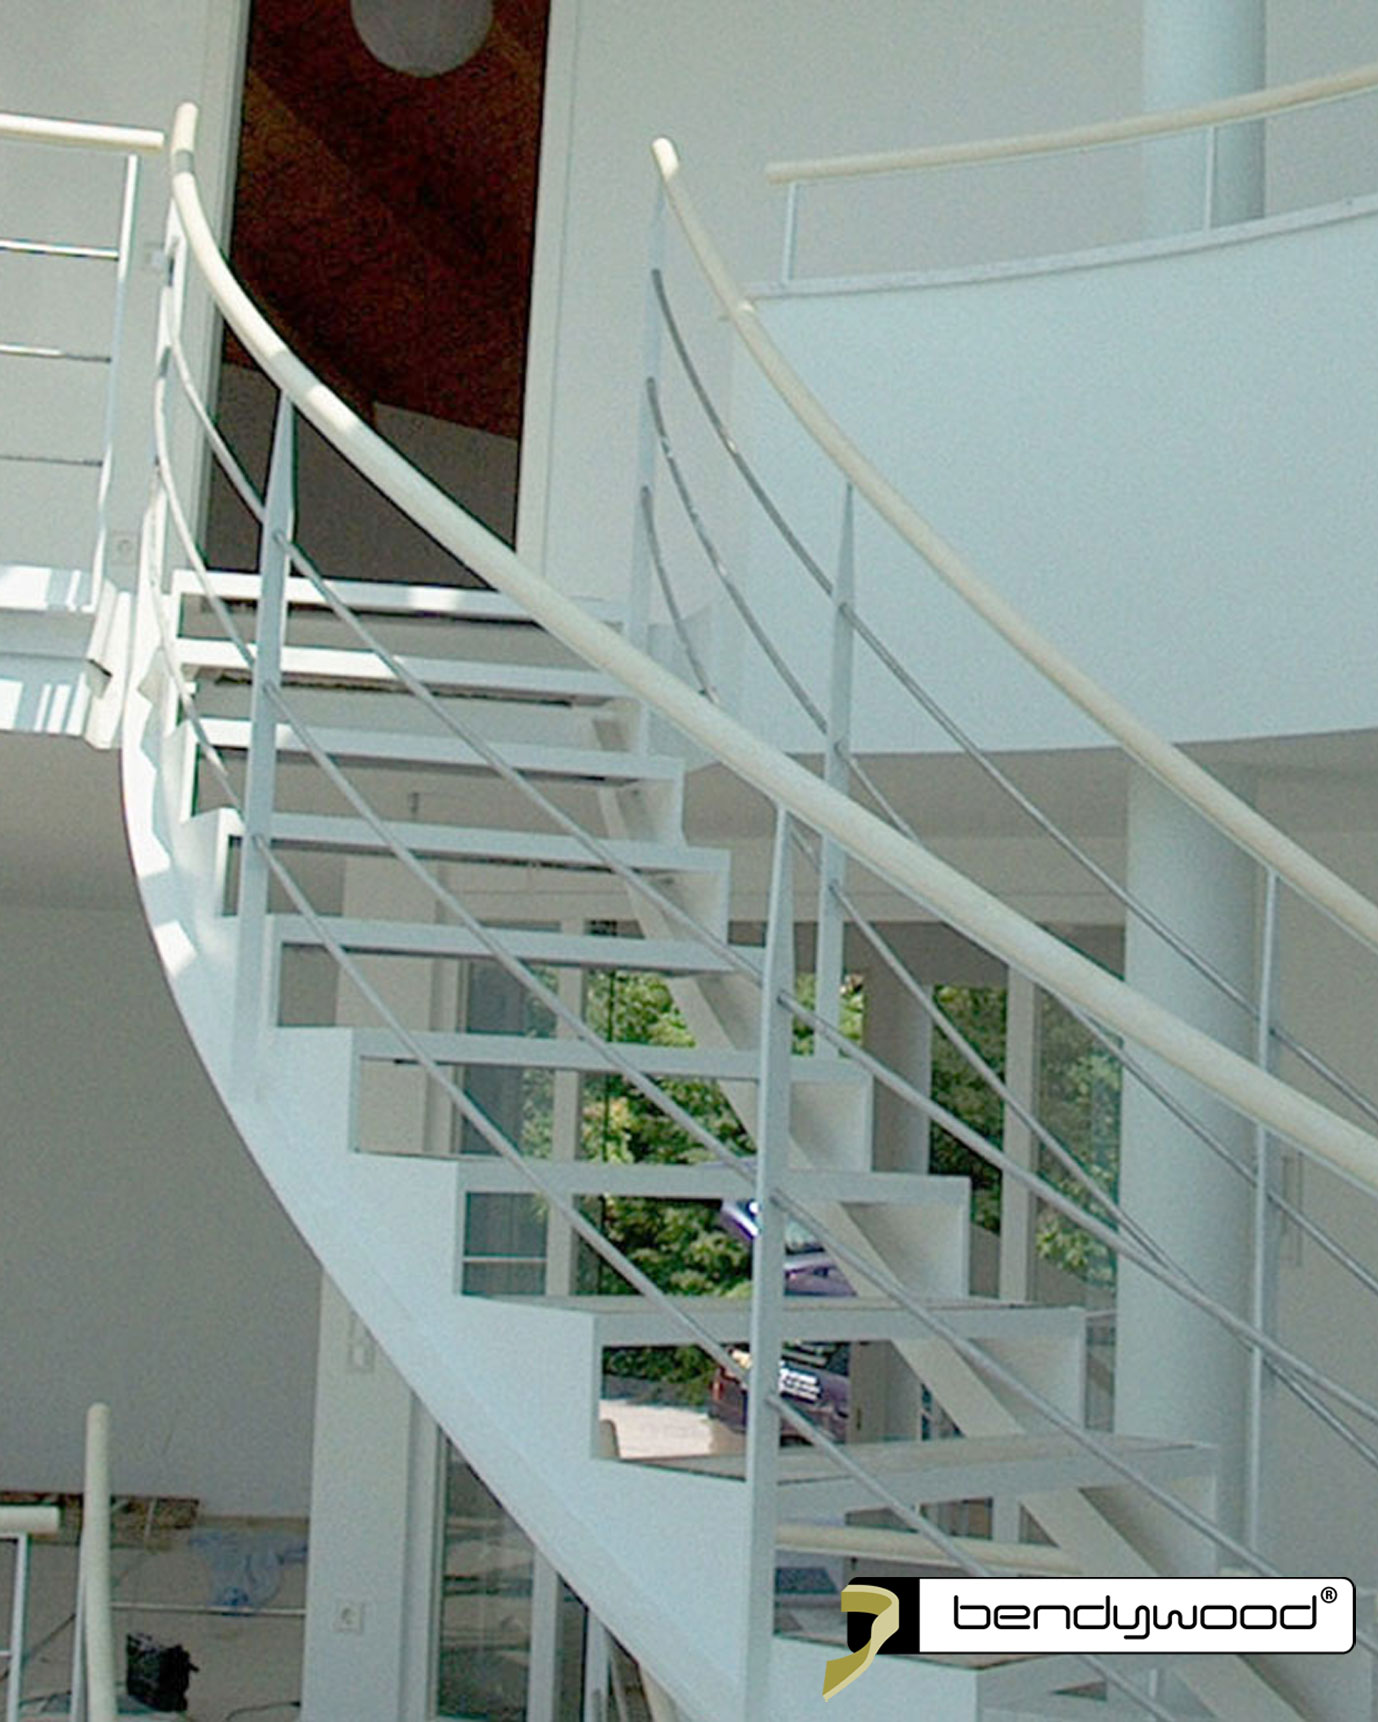 Bending stair handrails in Bendywood®-maple for staircases